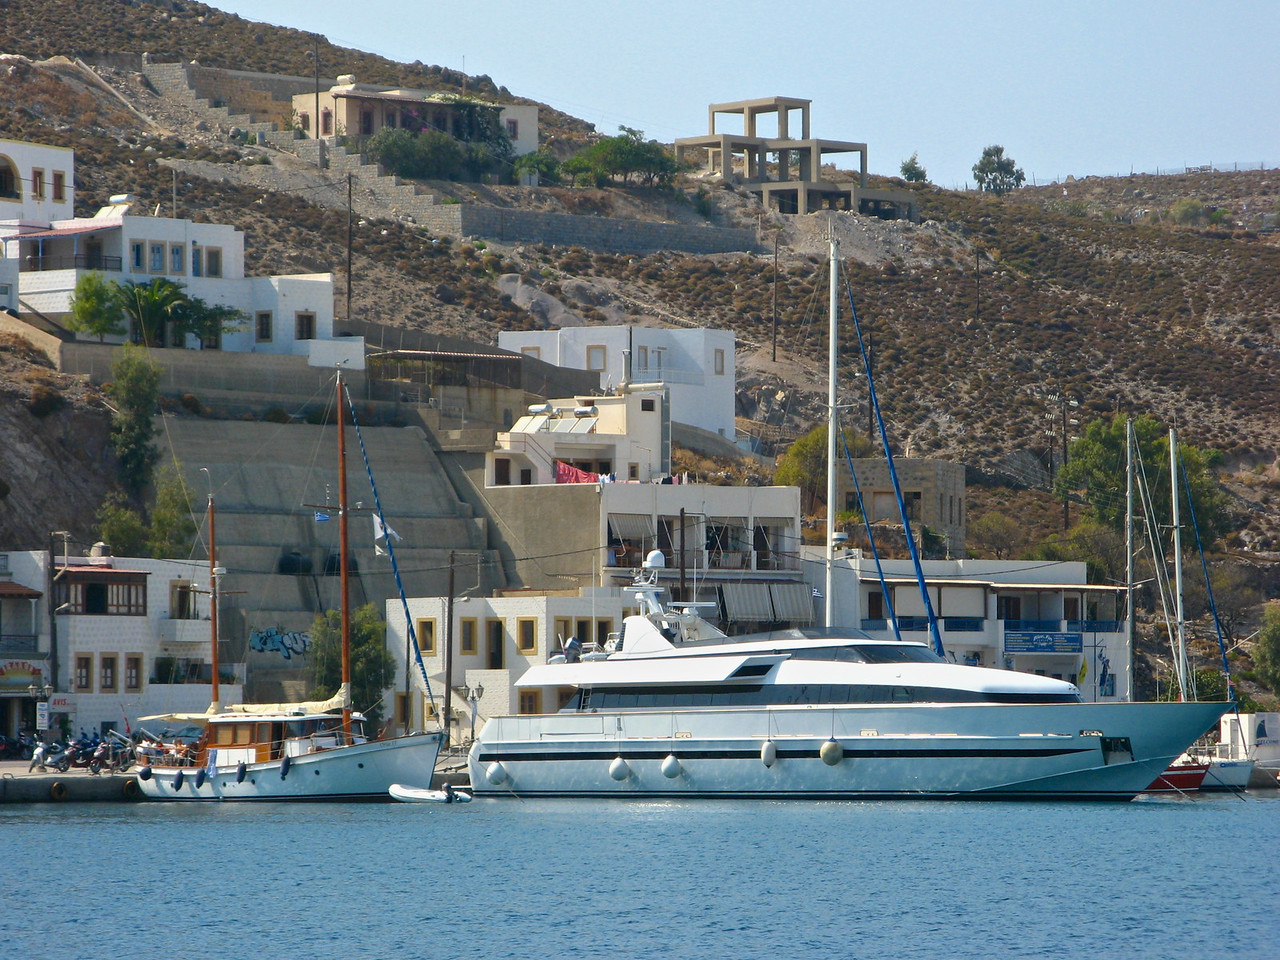 Here's a nice little yacht in the harbor.